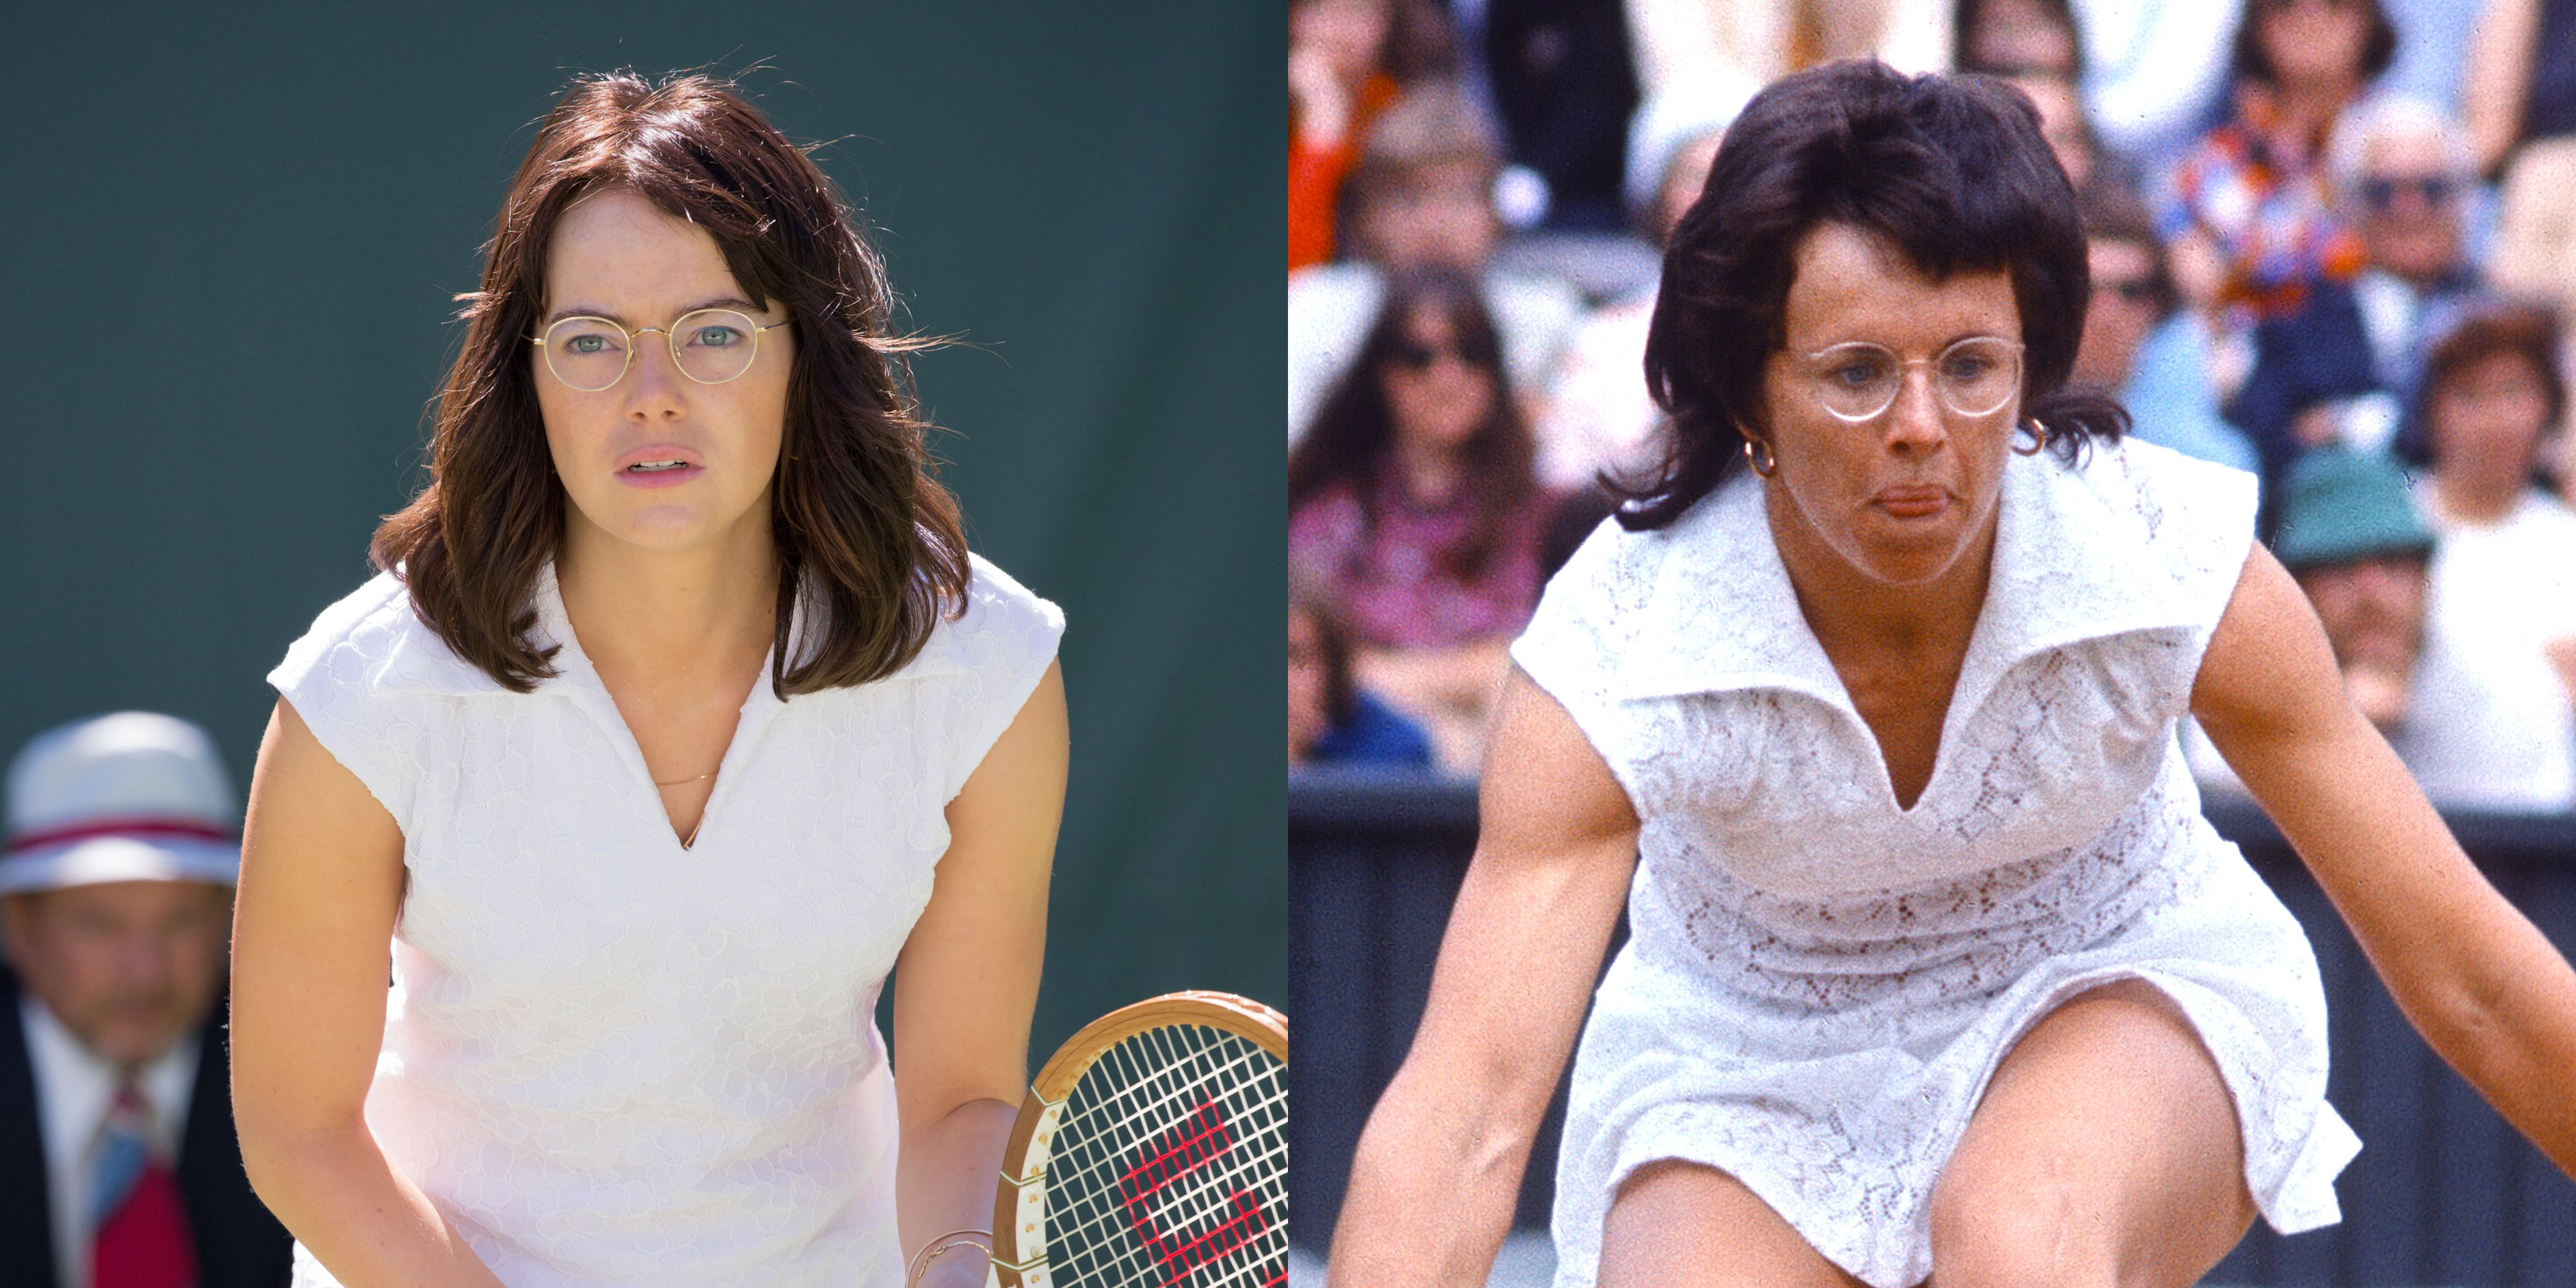 """<p>Stone portrays legendary tennis star Billie Jean King in the upcoming movie<em data-redactor-tag=""""em"""">Battle of the Sexes. </em>""""Playing Billie Jean was a bit of a game changer,"""" she <a href=""""http://www.marieclaire.com/celebrity/a28644/emma-stone-september-2017-cover/"""" data-tracking-id=""""recirc-text-link"""" target=""""_blank"""">tells</a> <em data-redactor-tag=""""em"""">Marie Claire</em>. She also gained <a href=""""http://www.hollywoodreporter.com/news/oscars-why-emma-stone-gained-15-pounds-la-la-land-972564"""" data-tracking-id=""""recirc-text-link"""" target=""""_blank"""">15 pounds of muscle</a> for the role. Fifteen. Pounds. <span class=""""redactor-invisible-space"""" data-verified=""""redactor"""" data-redactor-tag=""""span"""" data-redactor-class=""""redactor-invisible-space""""></span></p>"""